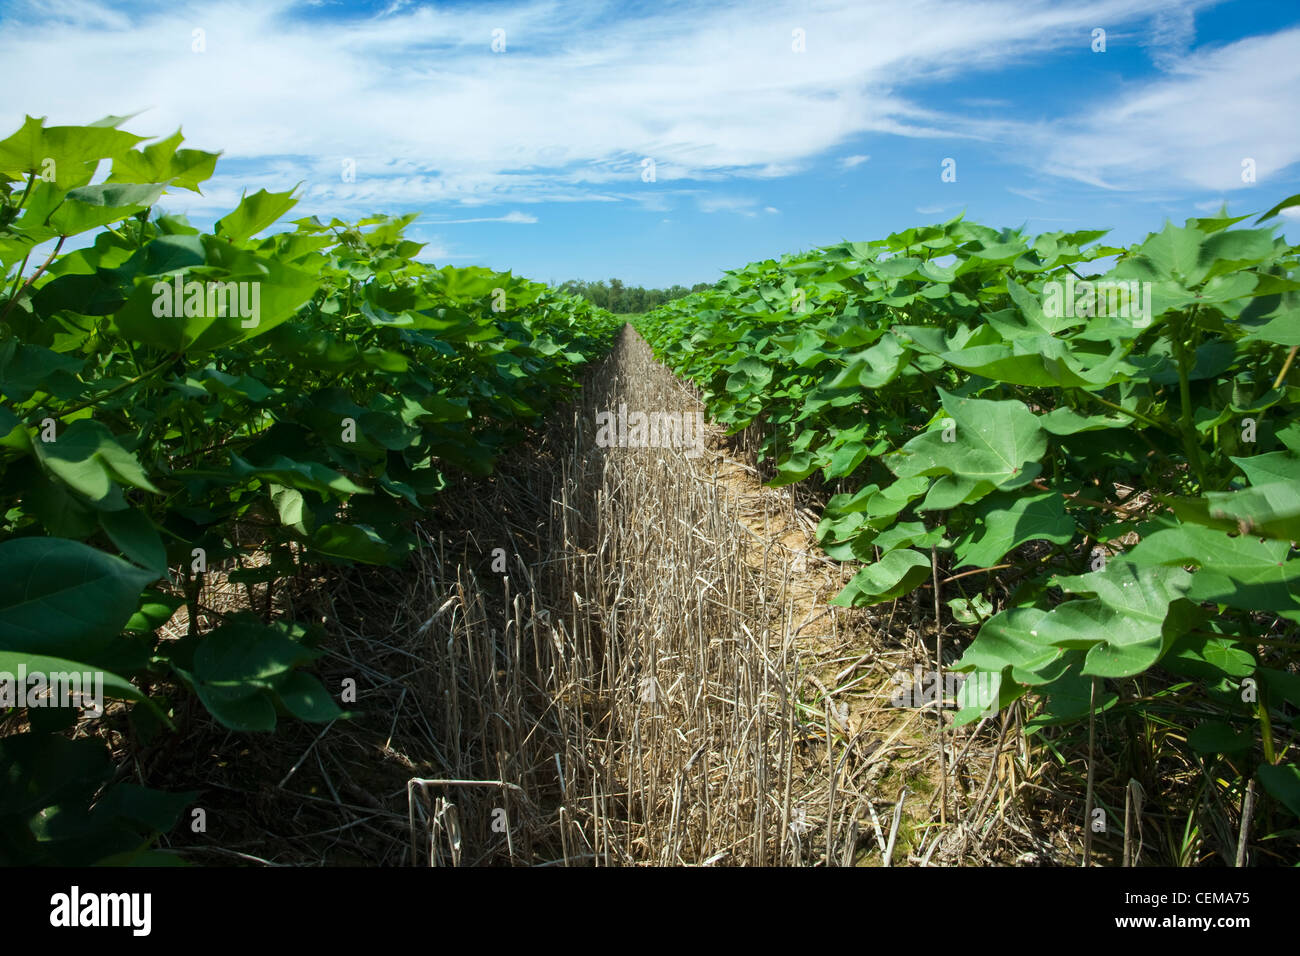 View down between rows of mid growth no-till cotton plants at the mid fruit set stage / near England, Arkansas, - Stock Image